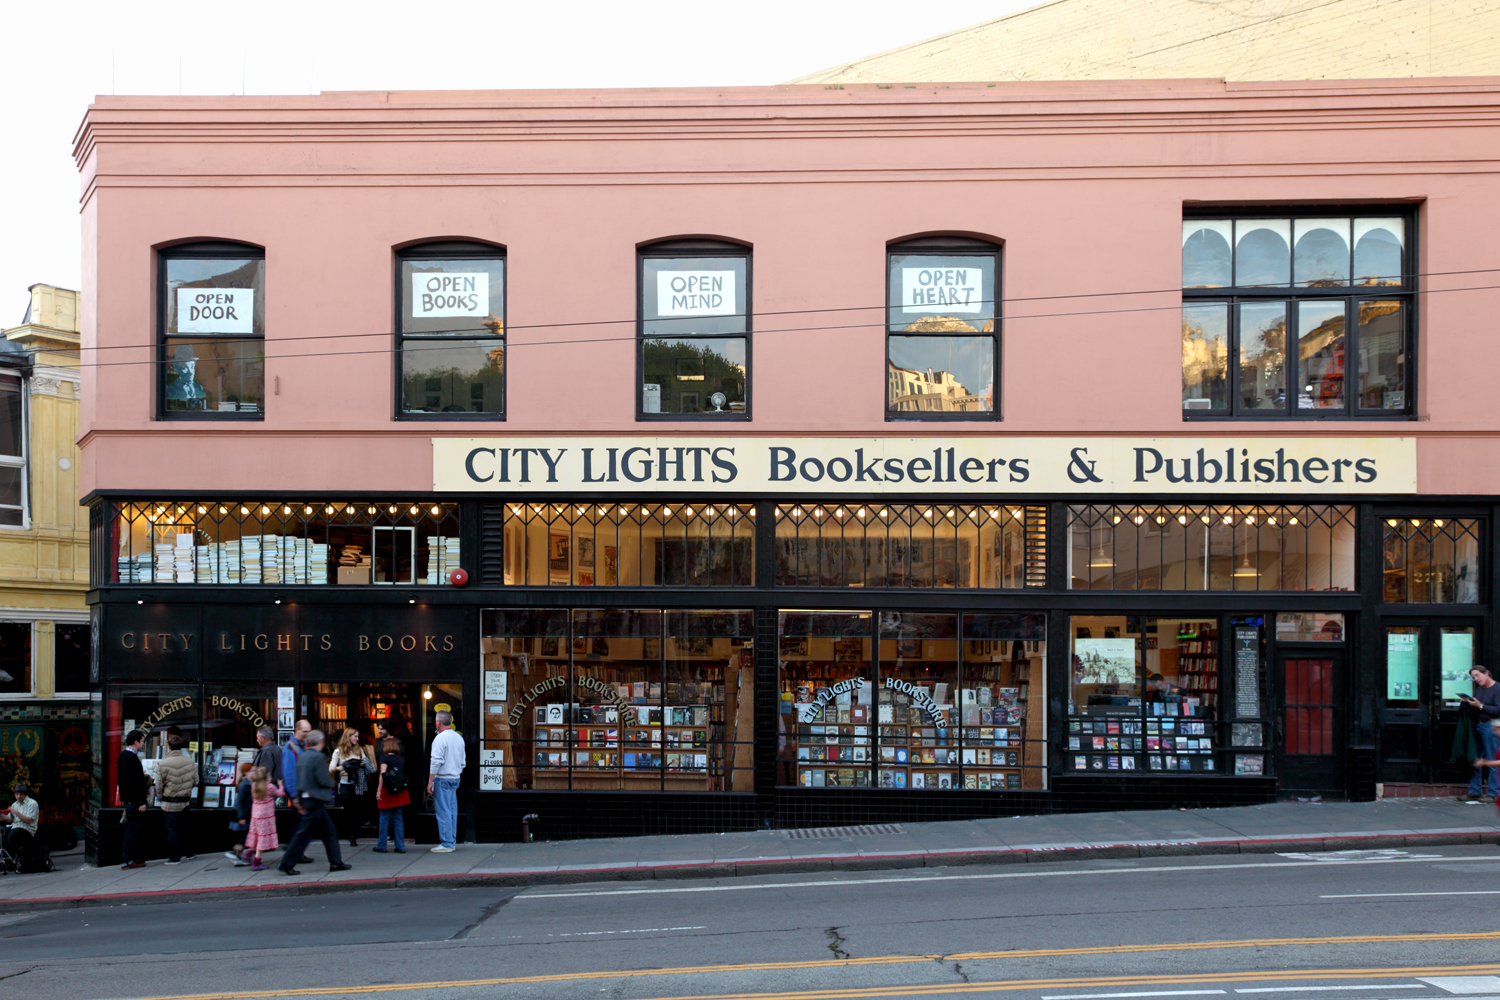 Lawrence Ferlinghetti's City Lights Bookstore opened in 1953 and still has one of the best collections of poetry, fine art tomes, and political rags in the city.